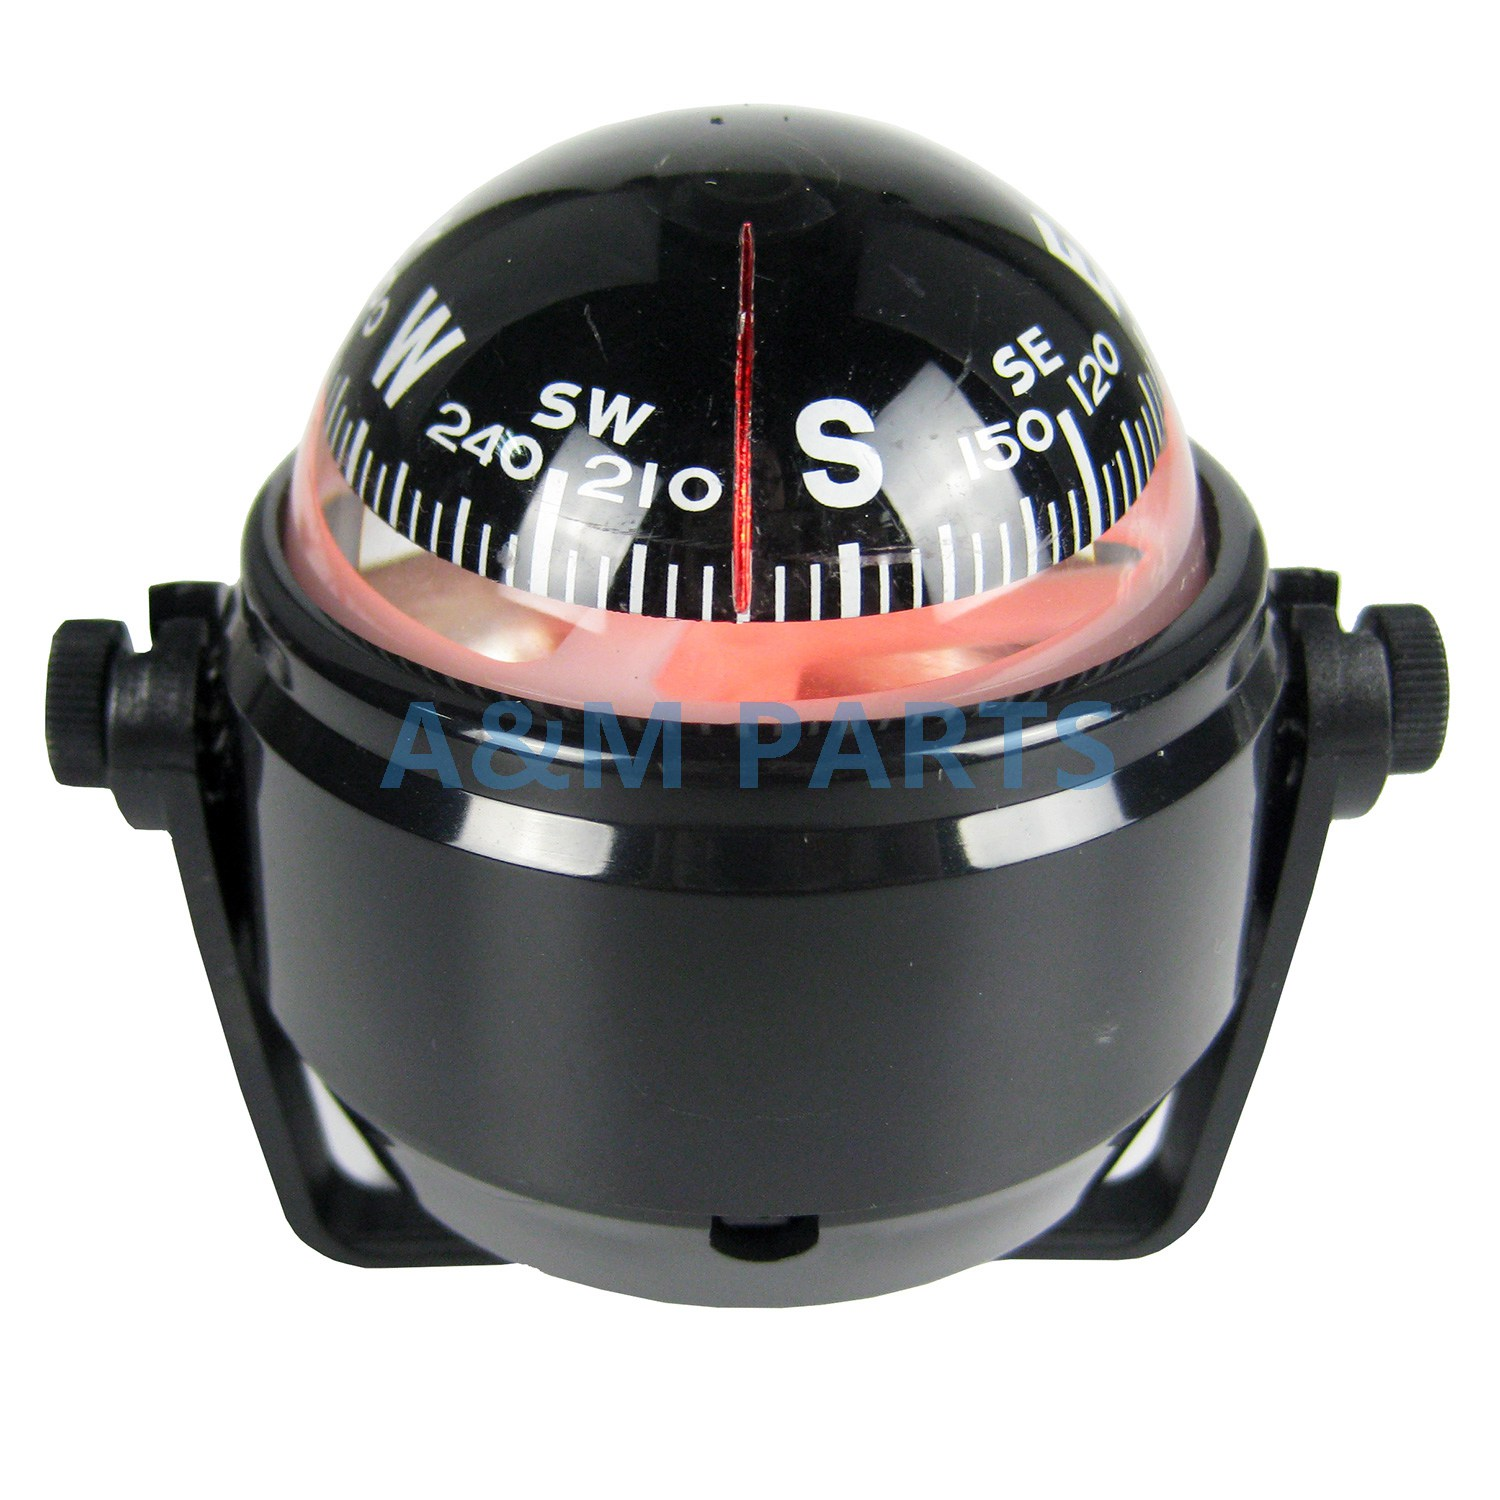 Loyal Led Boat Navigation Compass For Marine Sail Ship Vehicle Car White Electronic Marine Hardware